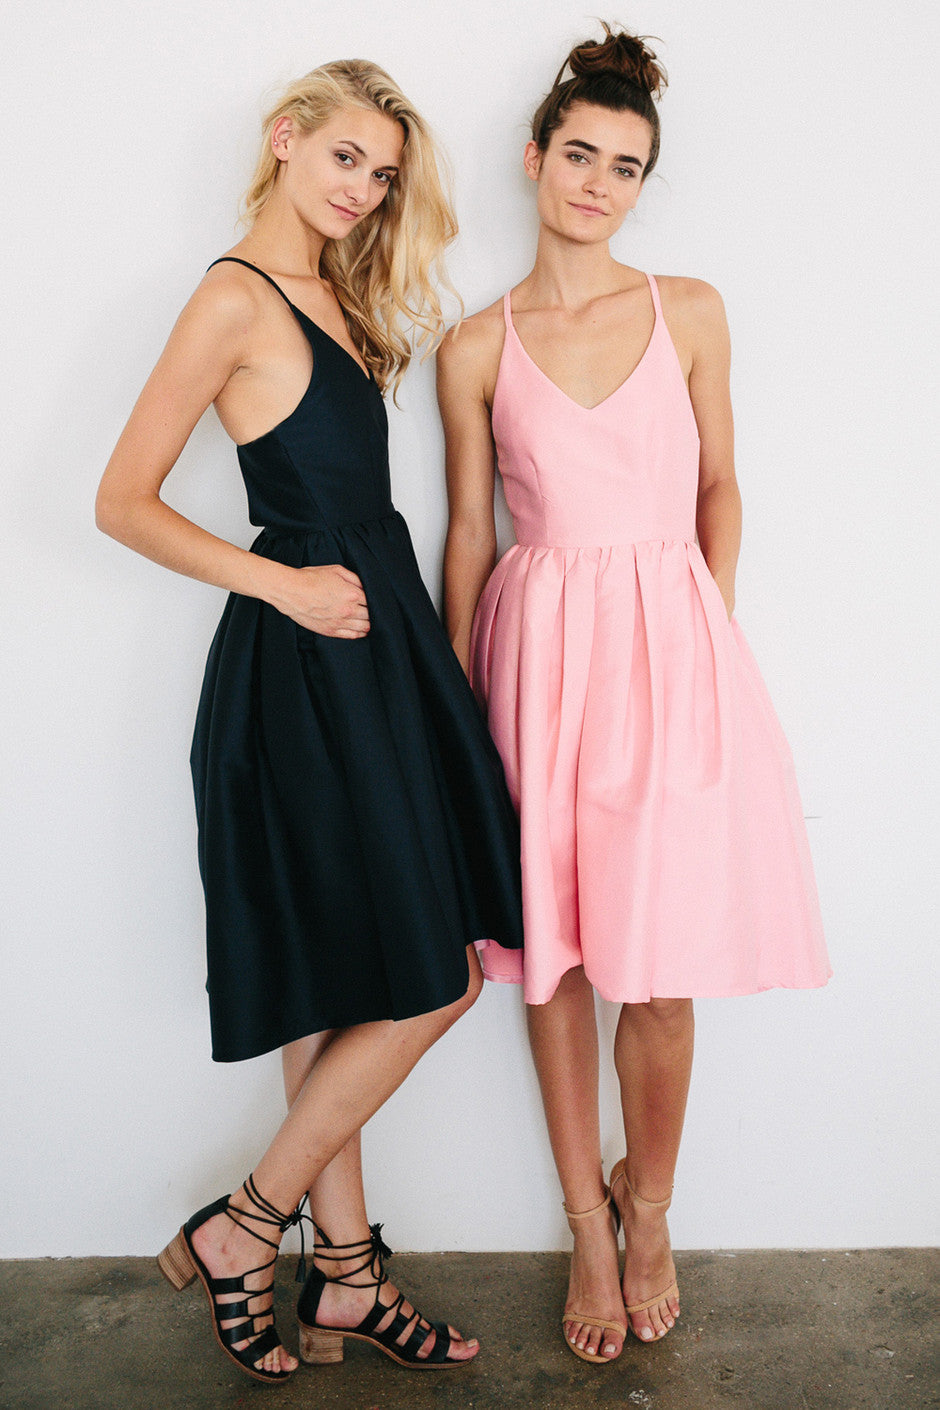 Sucker for Structure -> SHOP BRIDESMAIDS